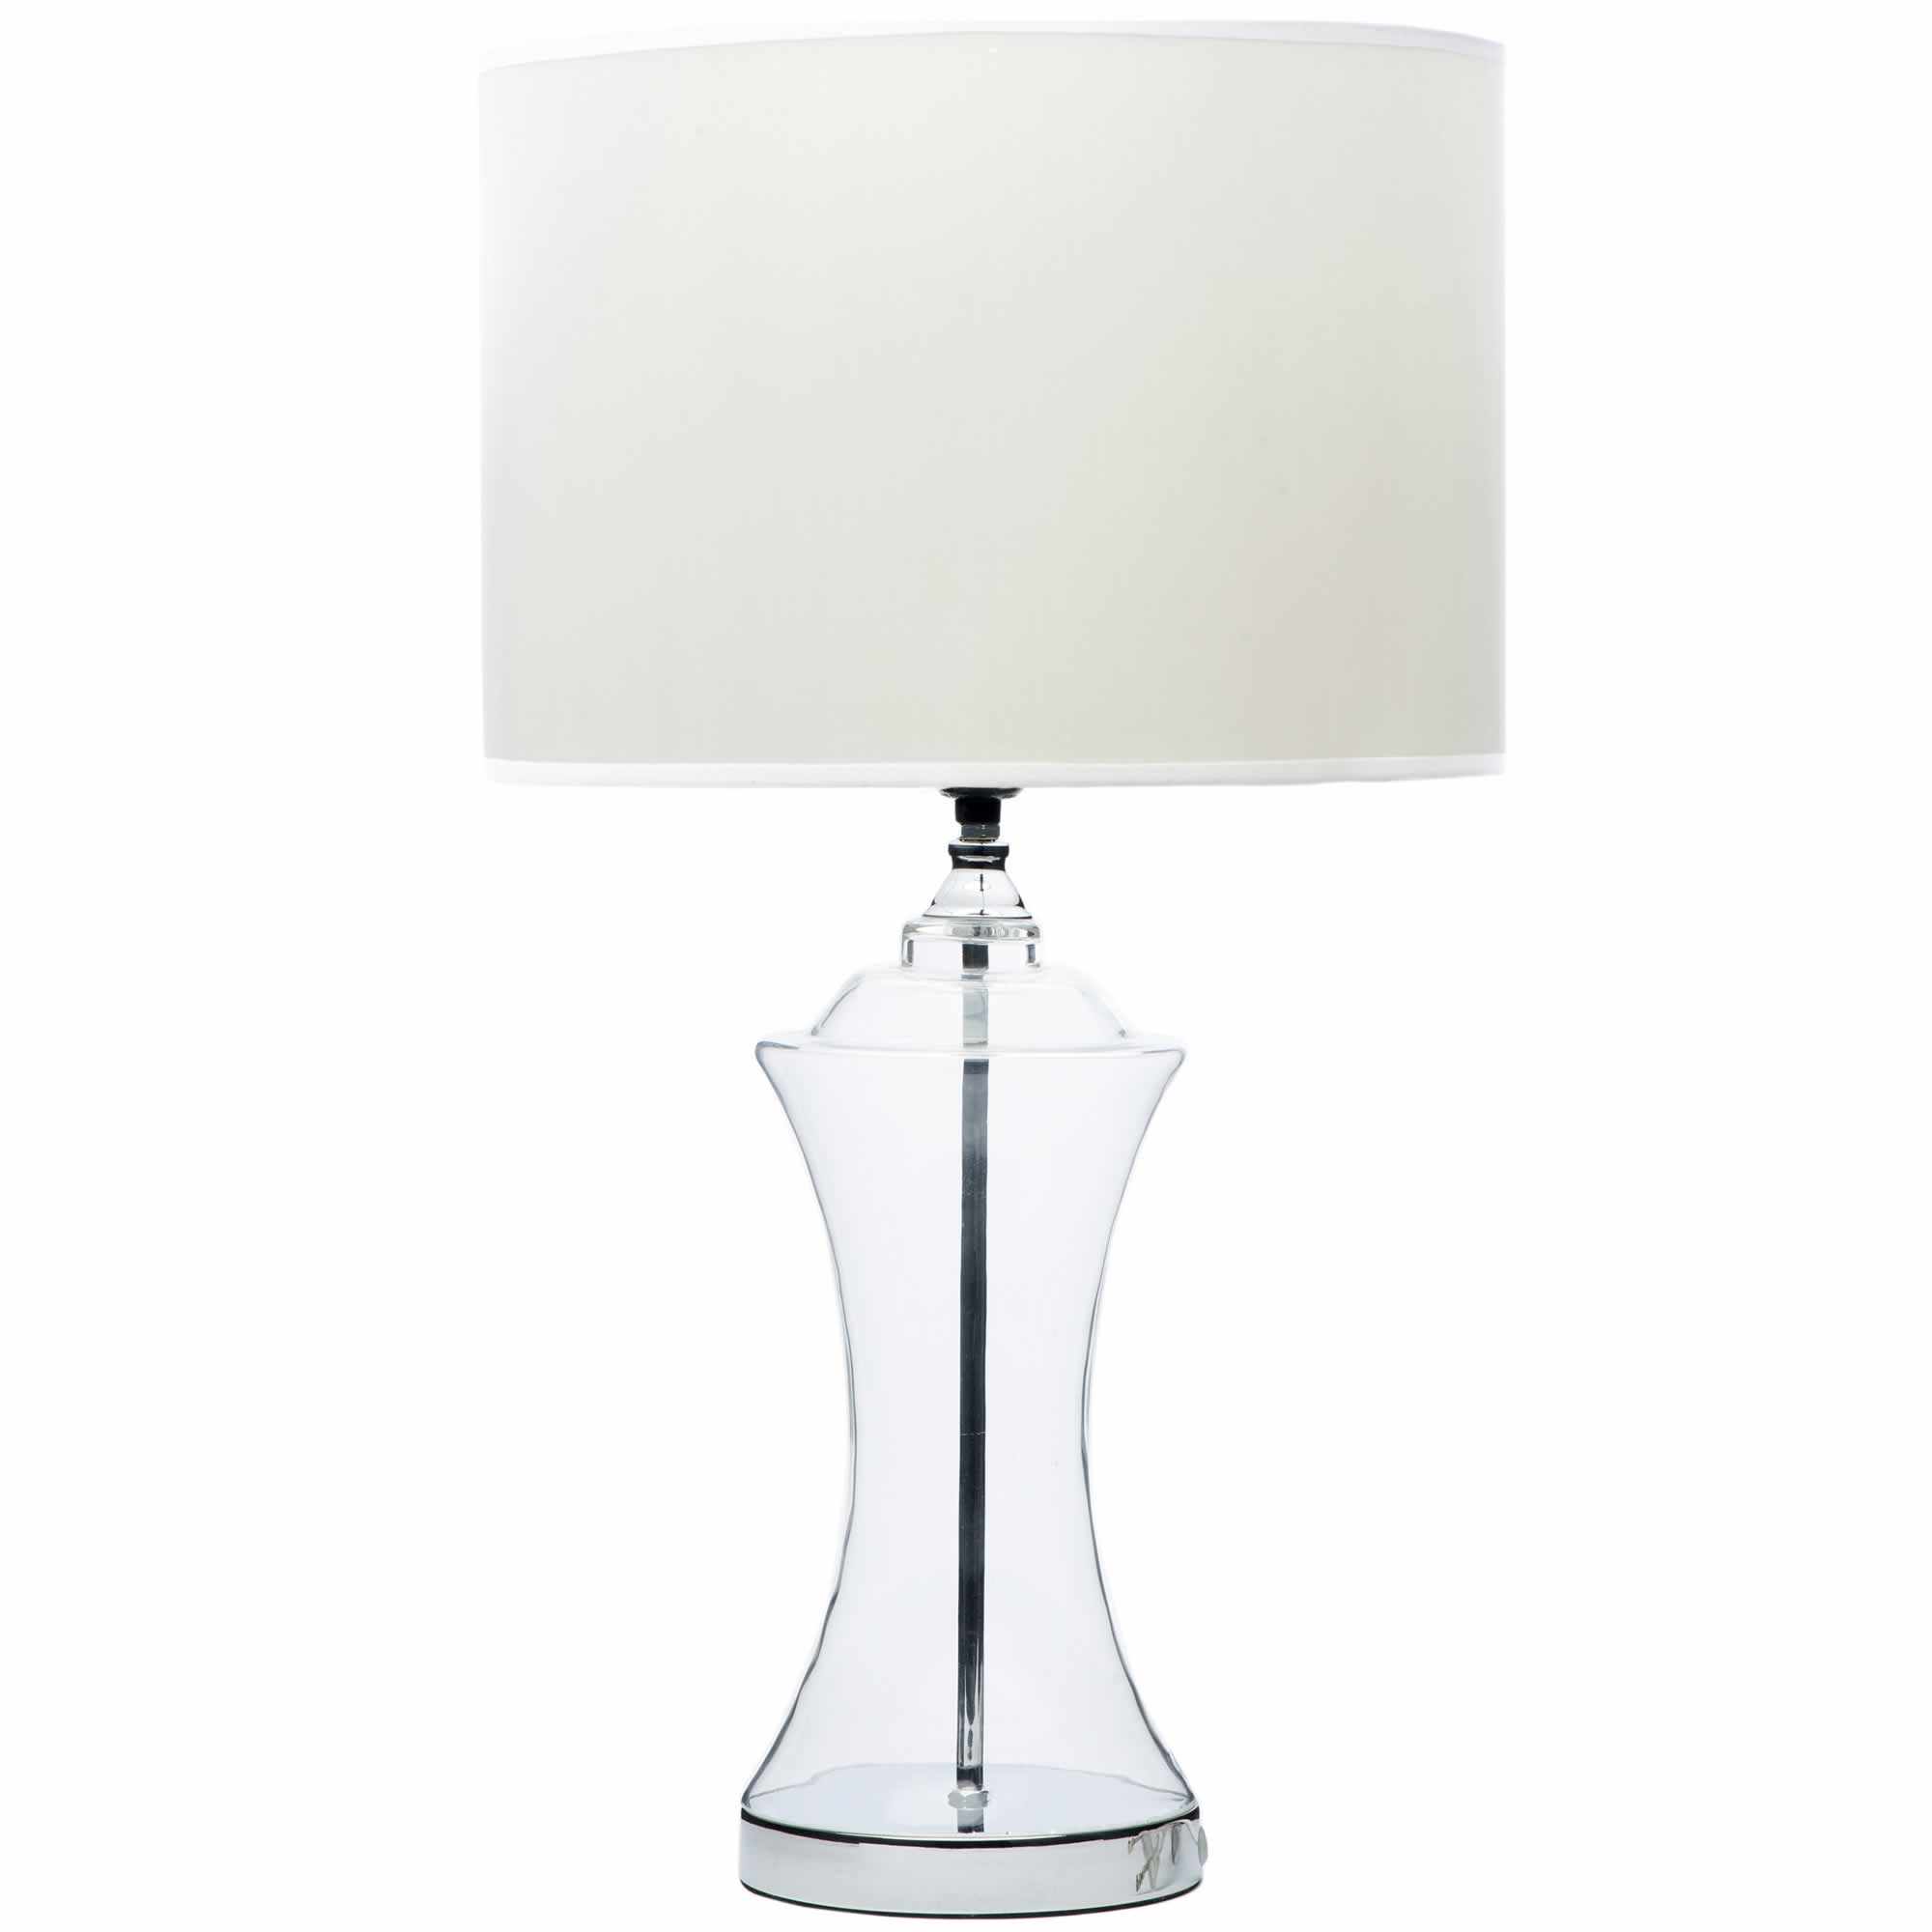 The Elegant Hourglass Table Lamp - TL0008